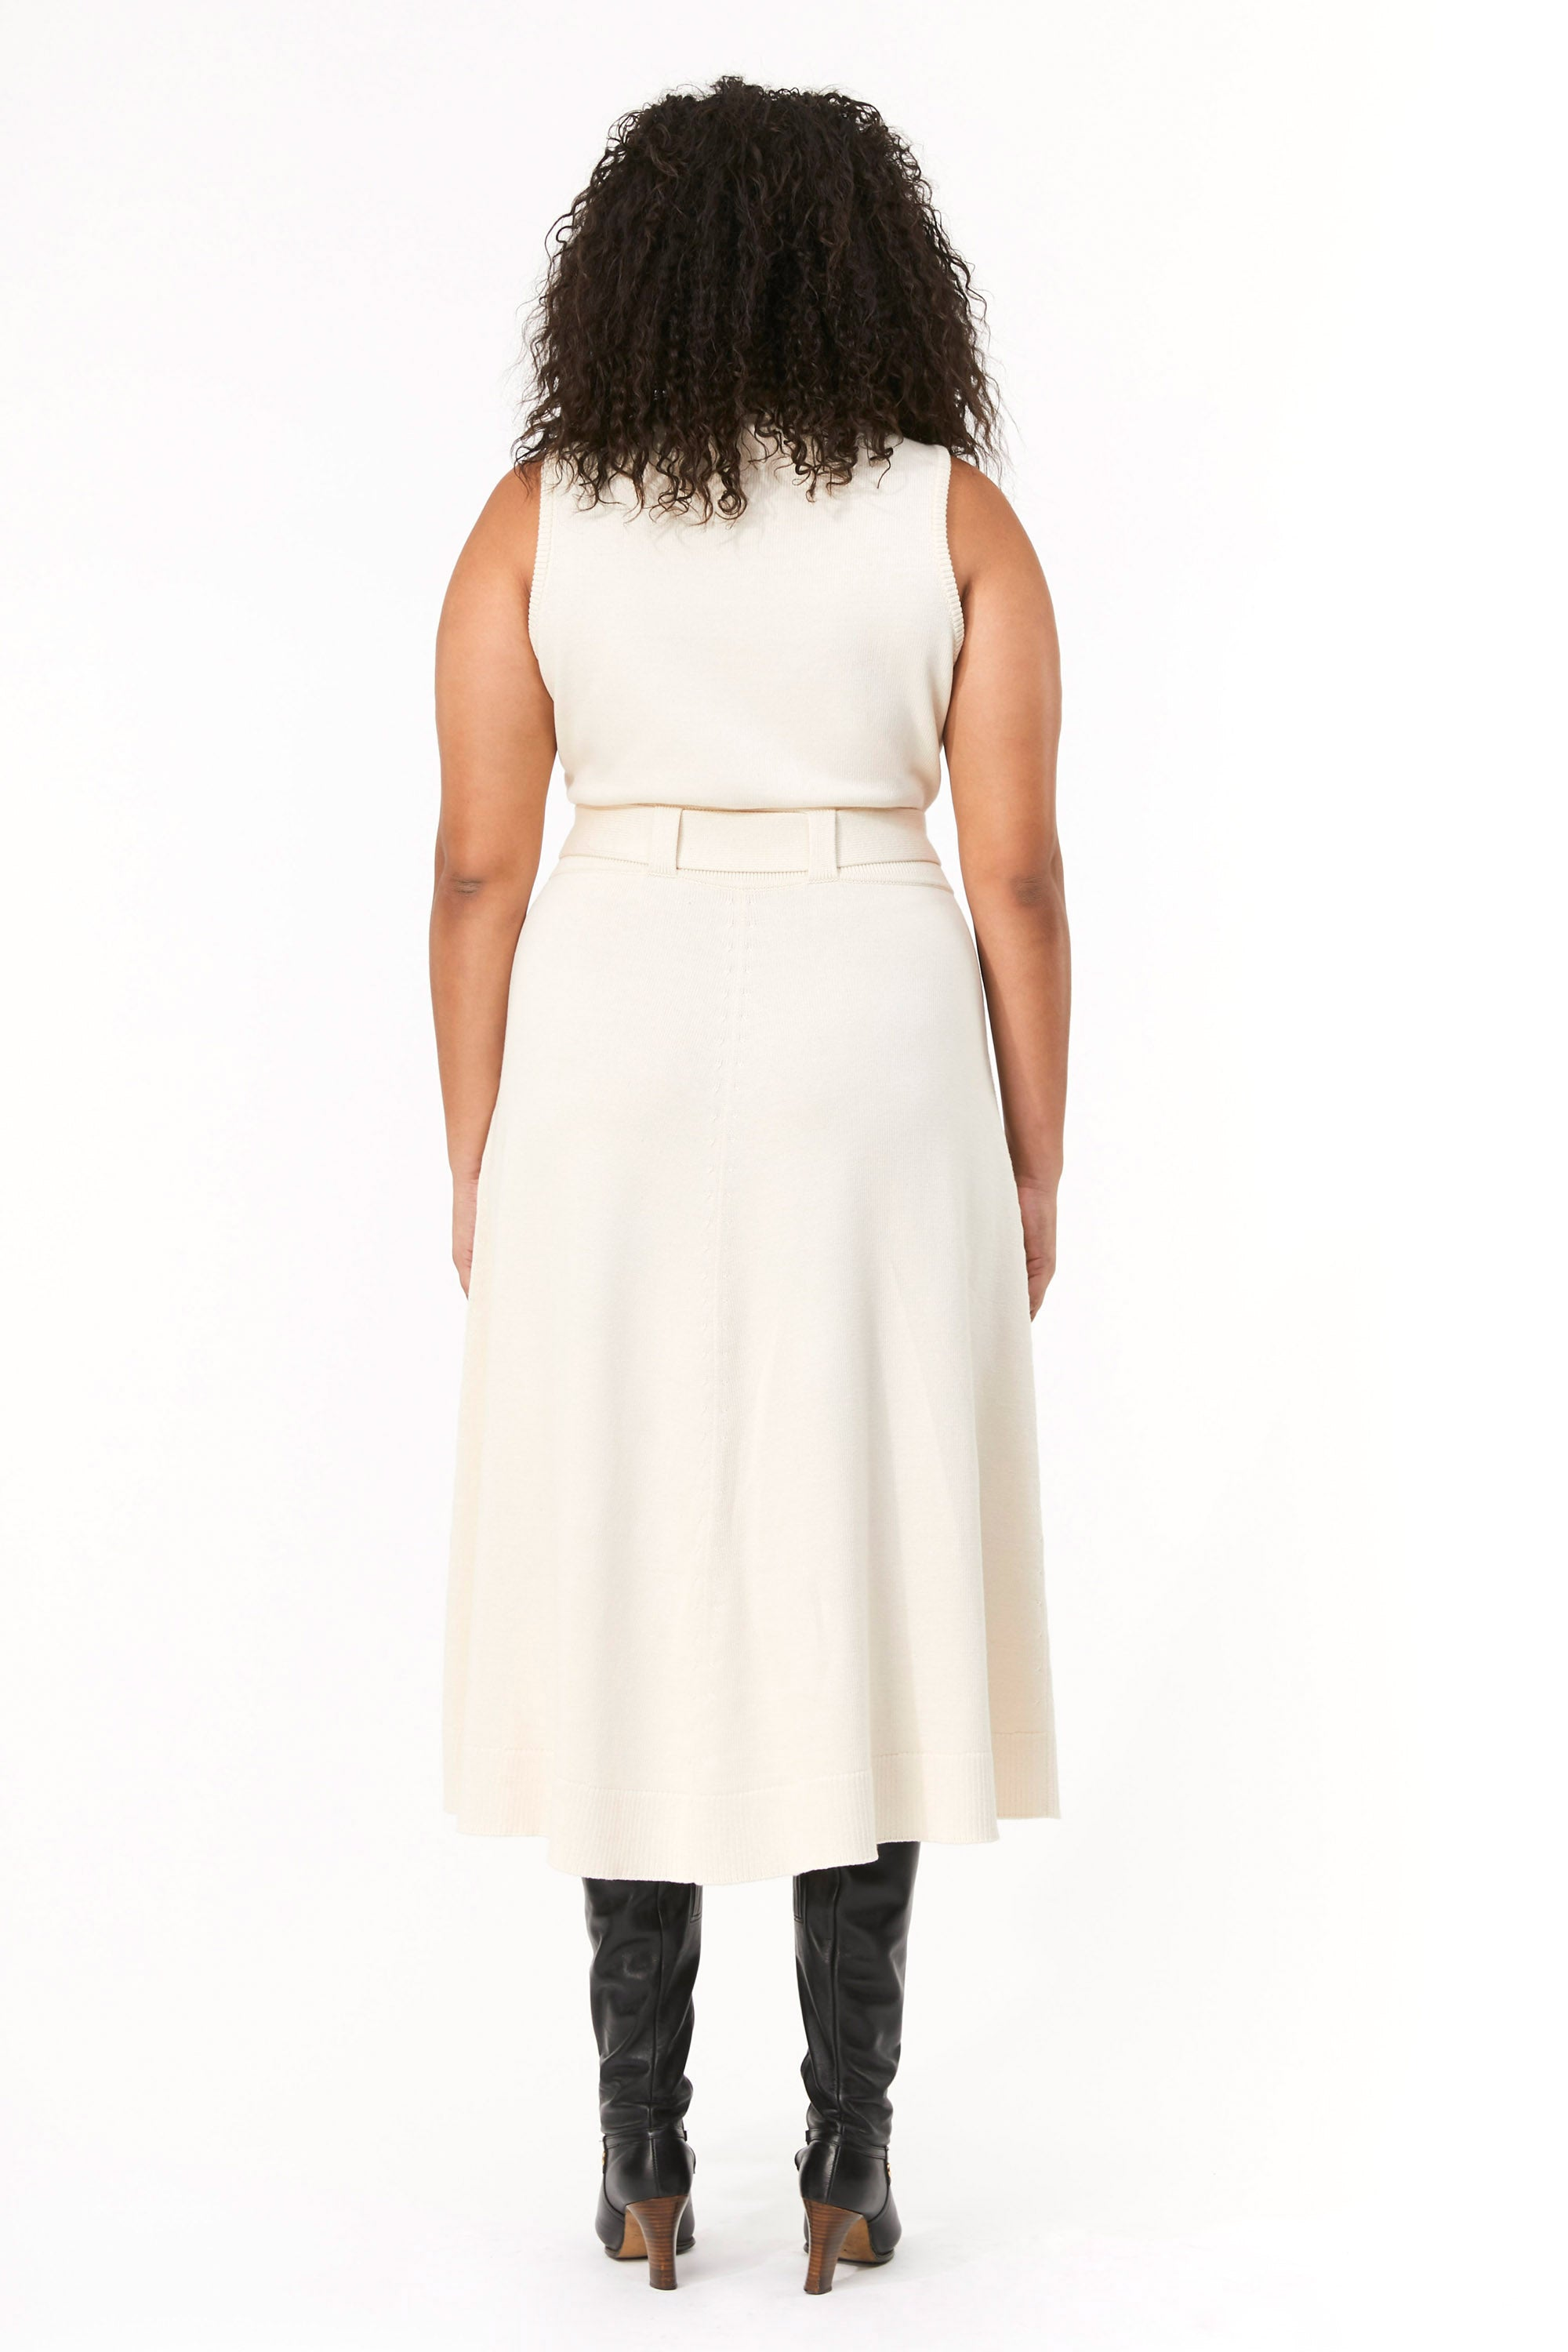 Mara Hoffman Extended Ivory Elle Dress in organic cotton (back)